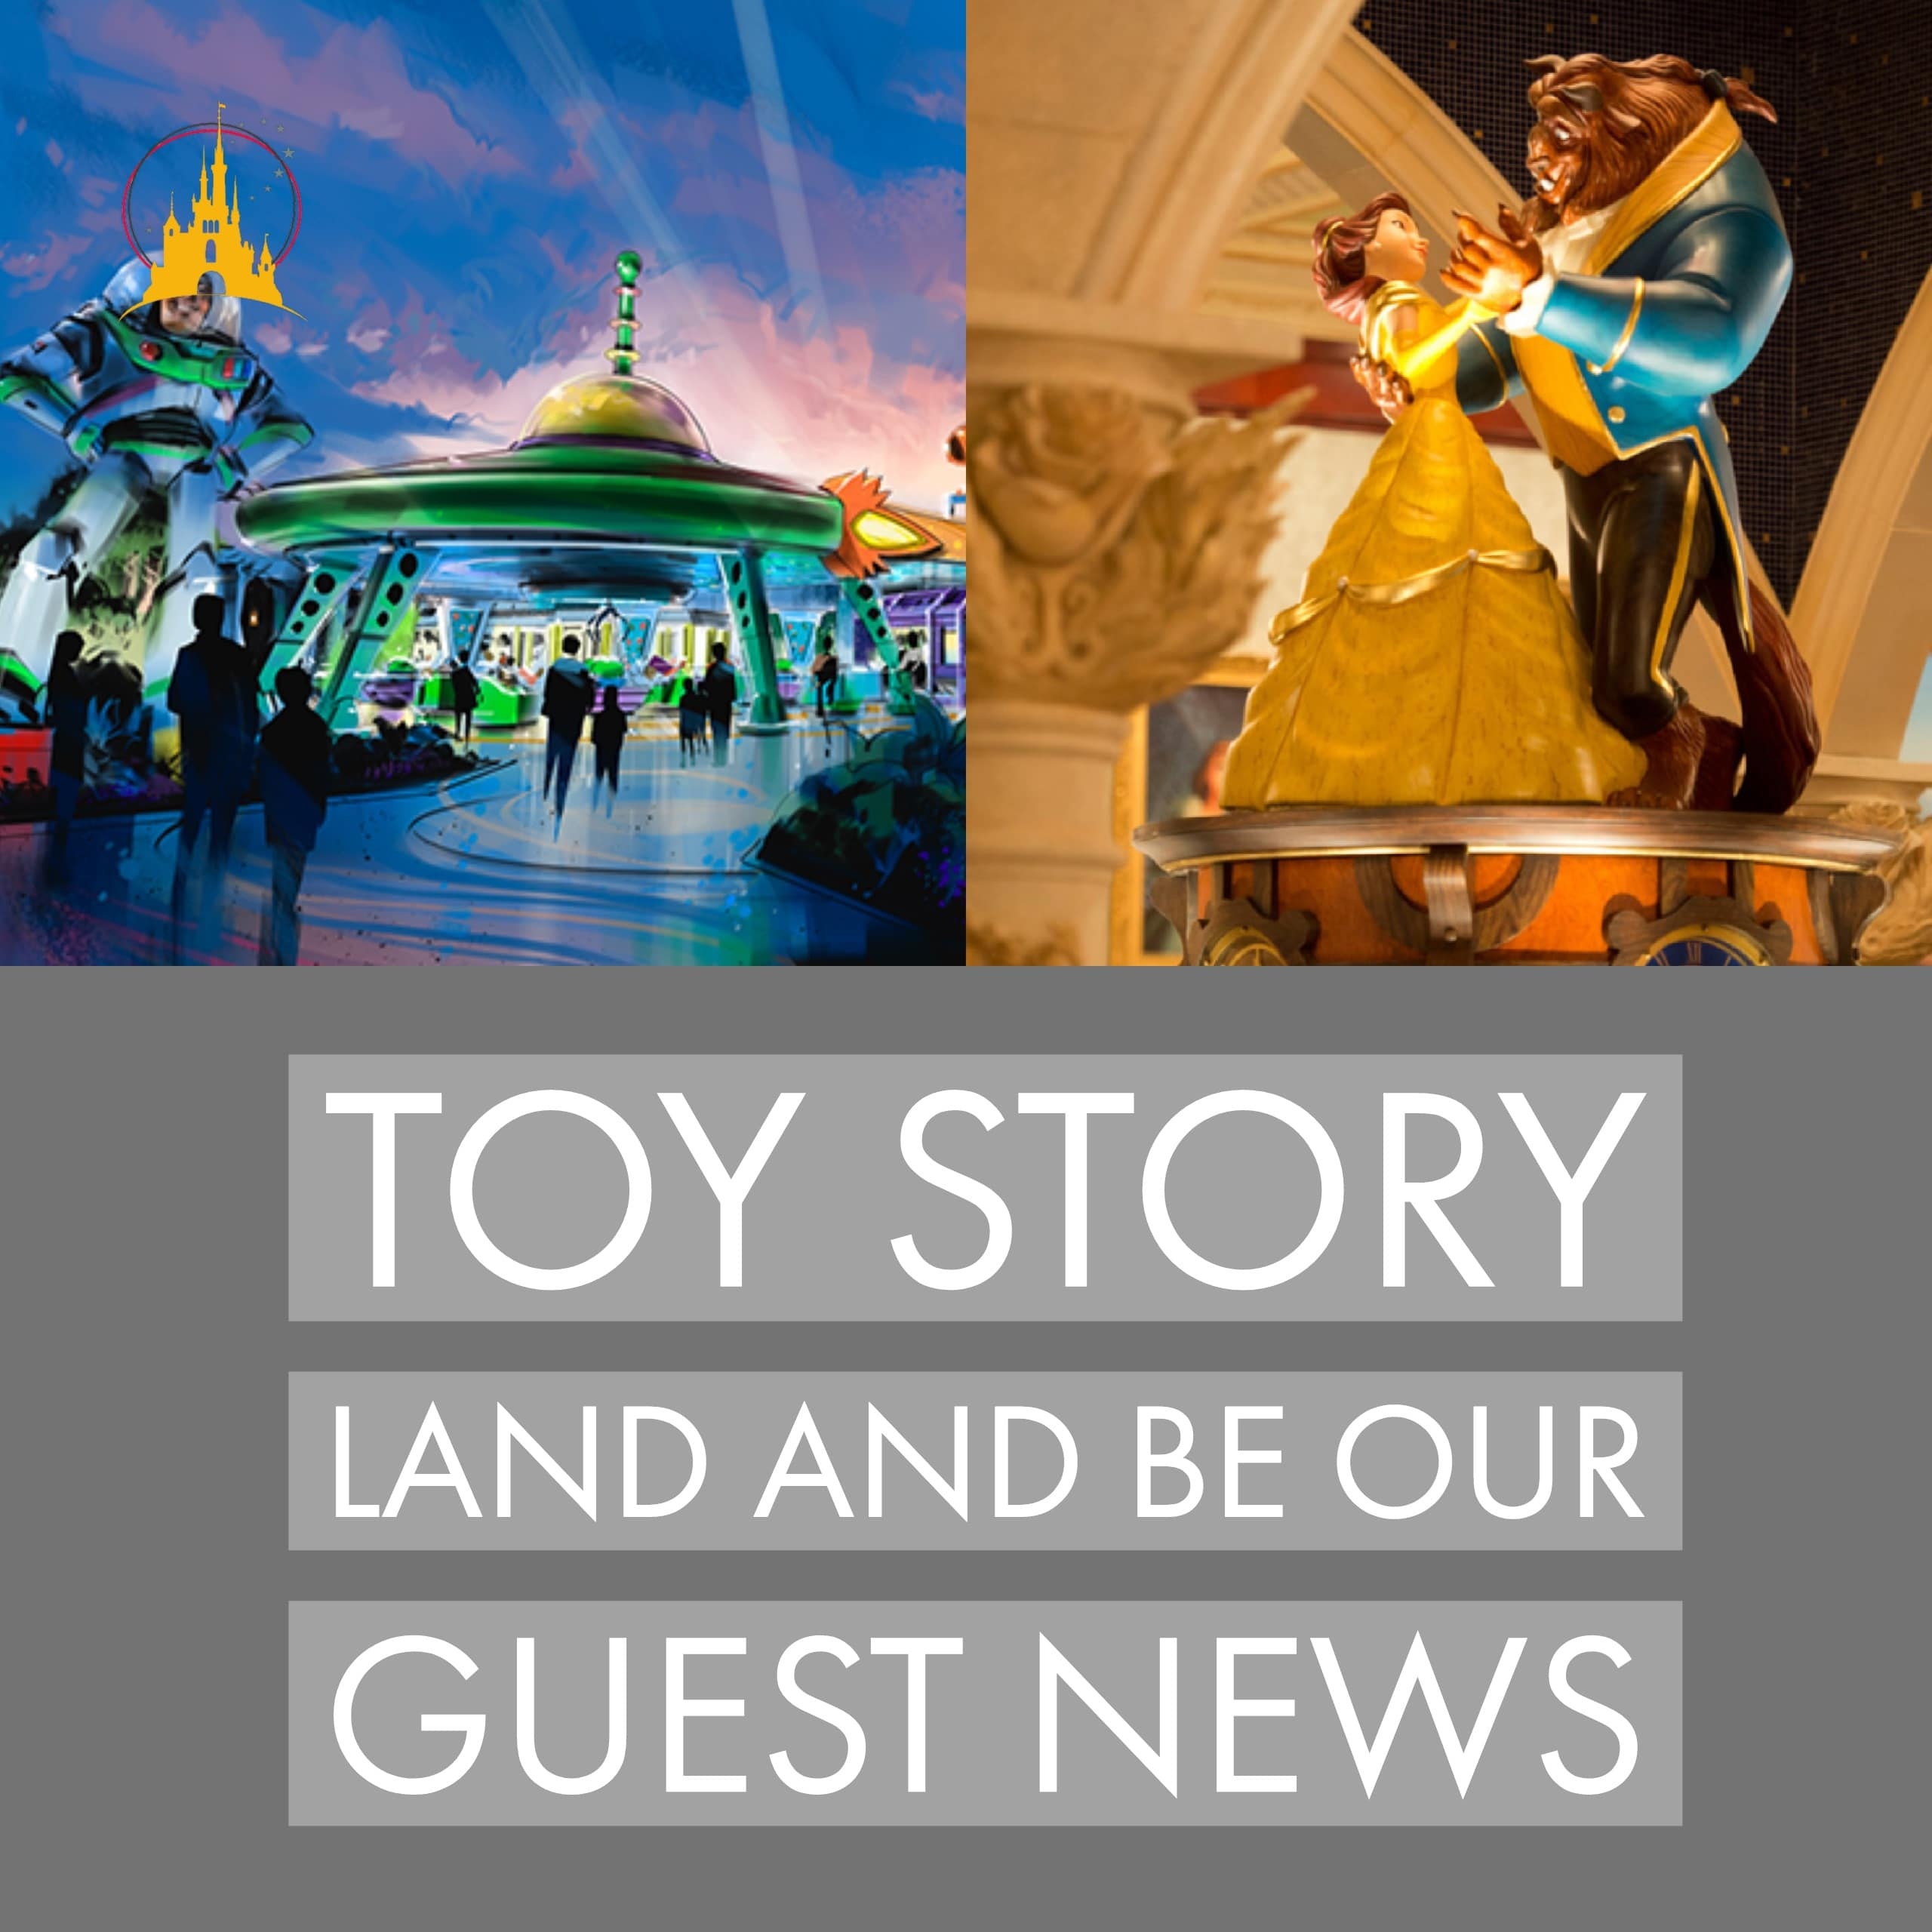 Toy Story Land and Be Our Guest news